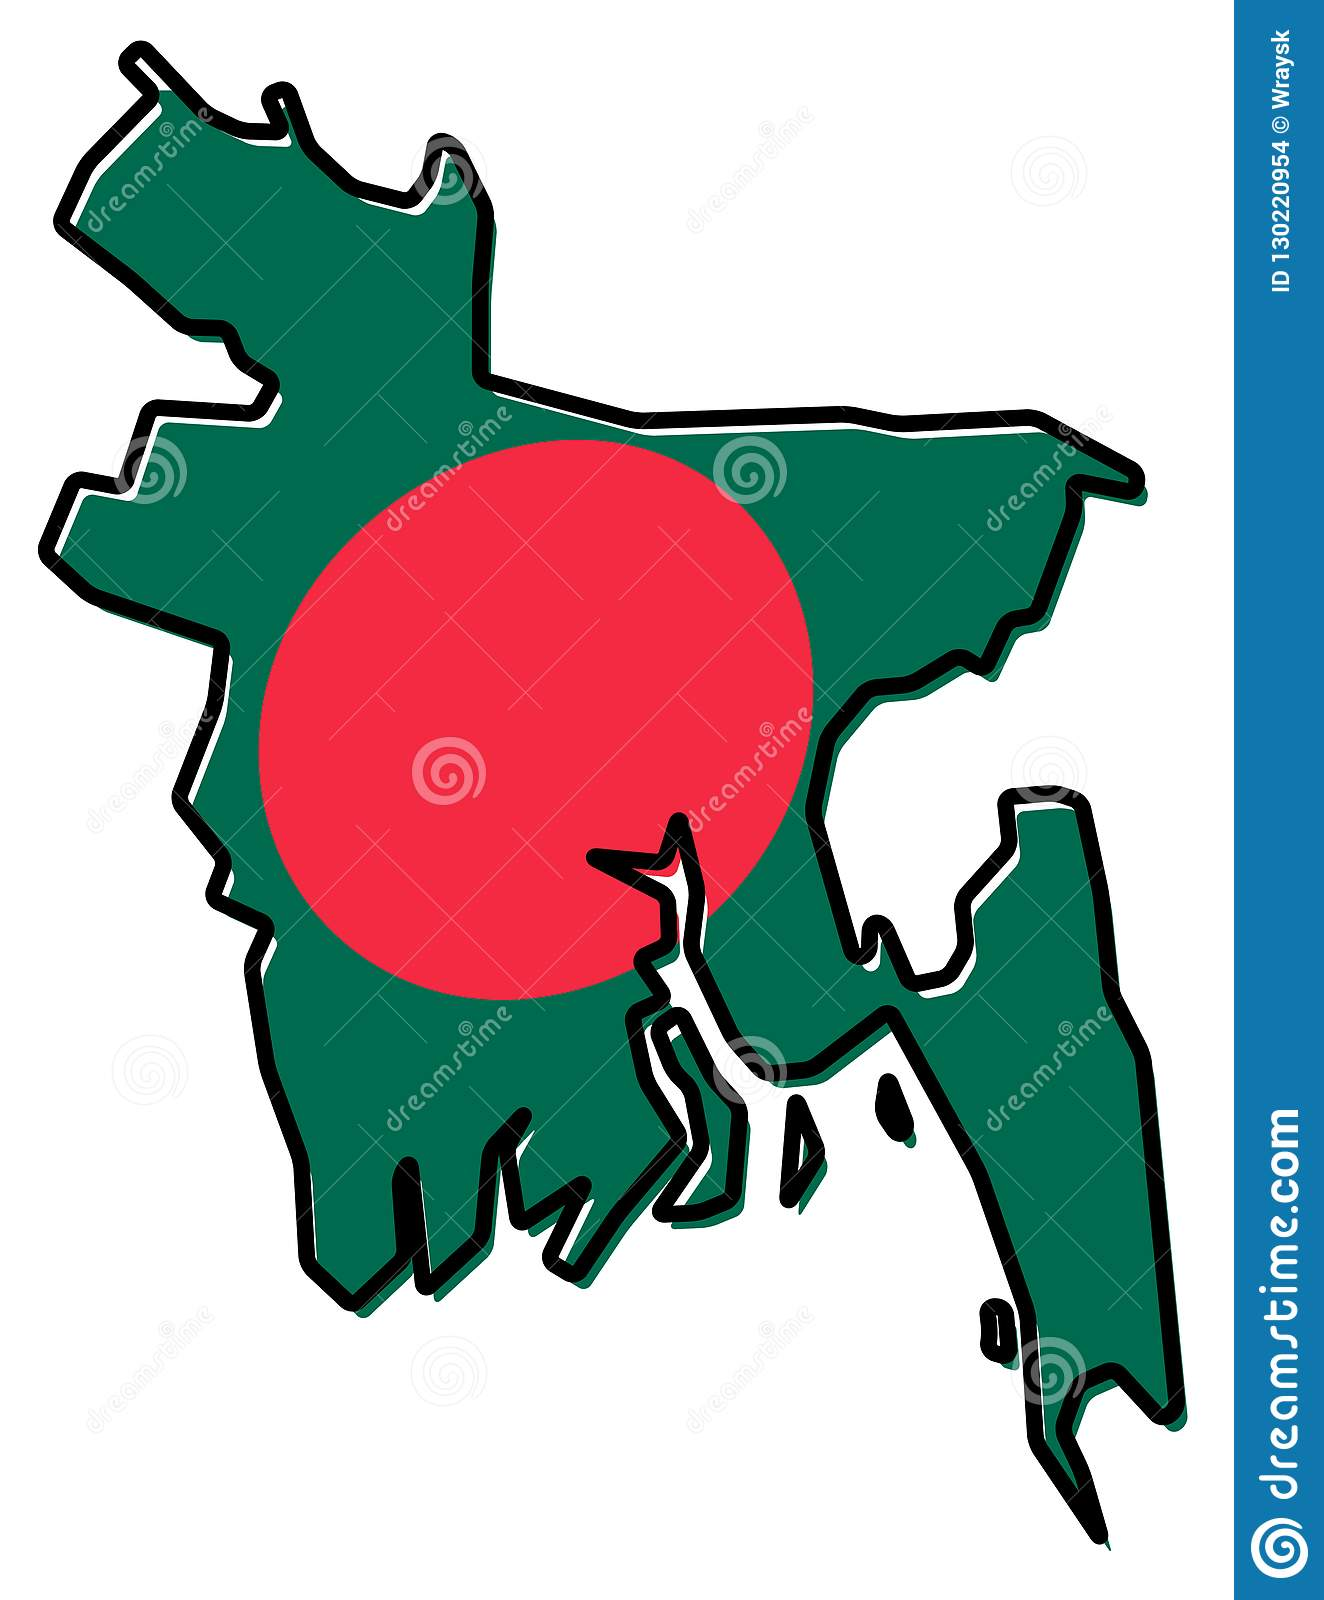 Simplified Map Of Bangladesh Outline, With Slightly Bent